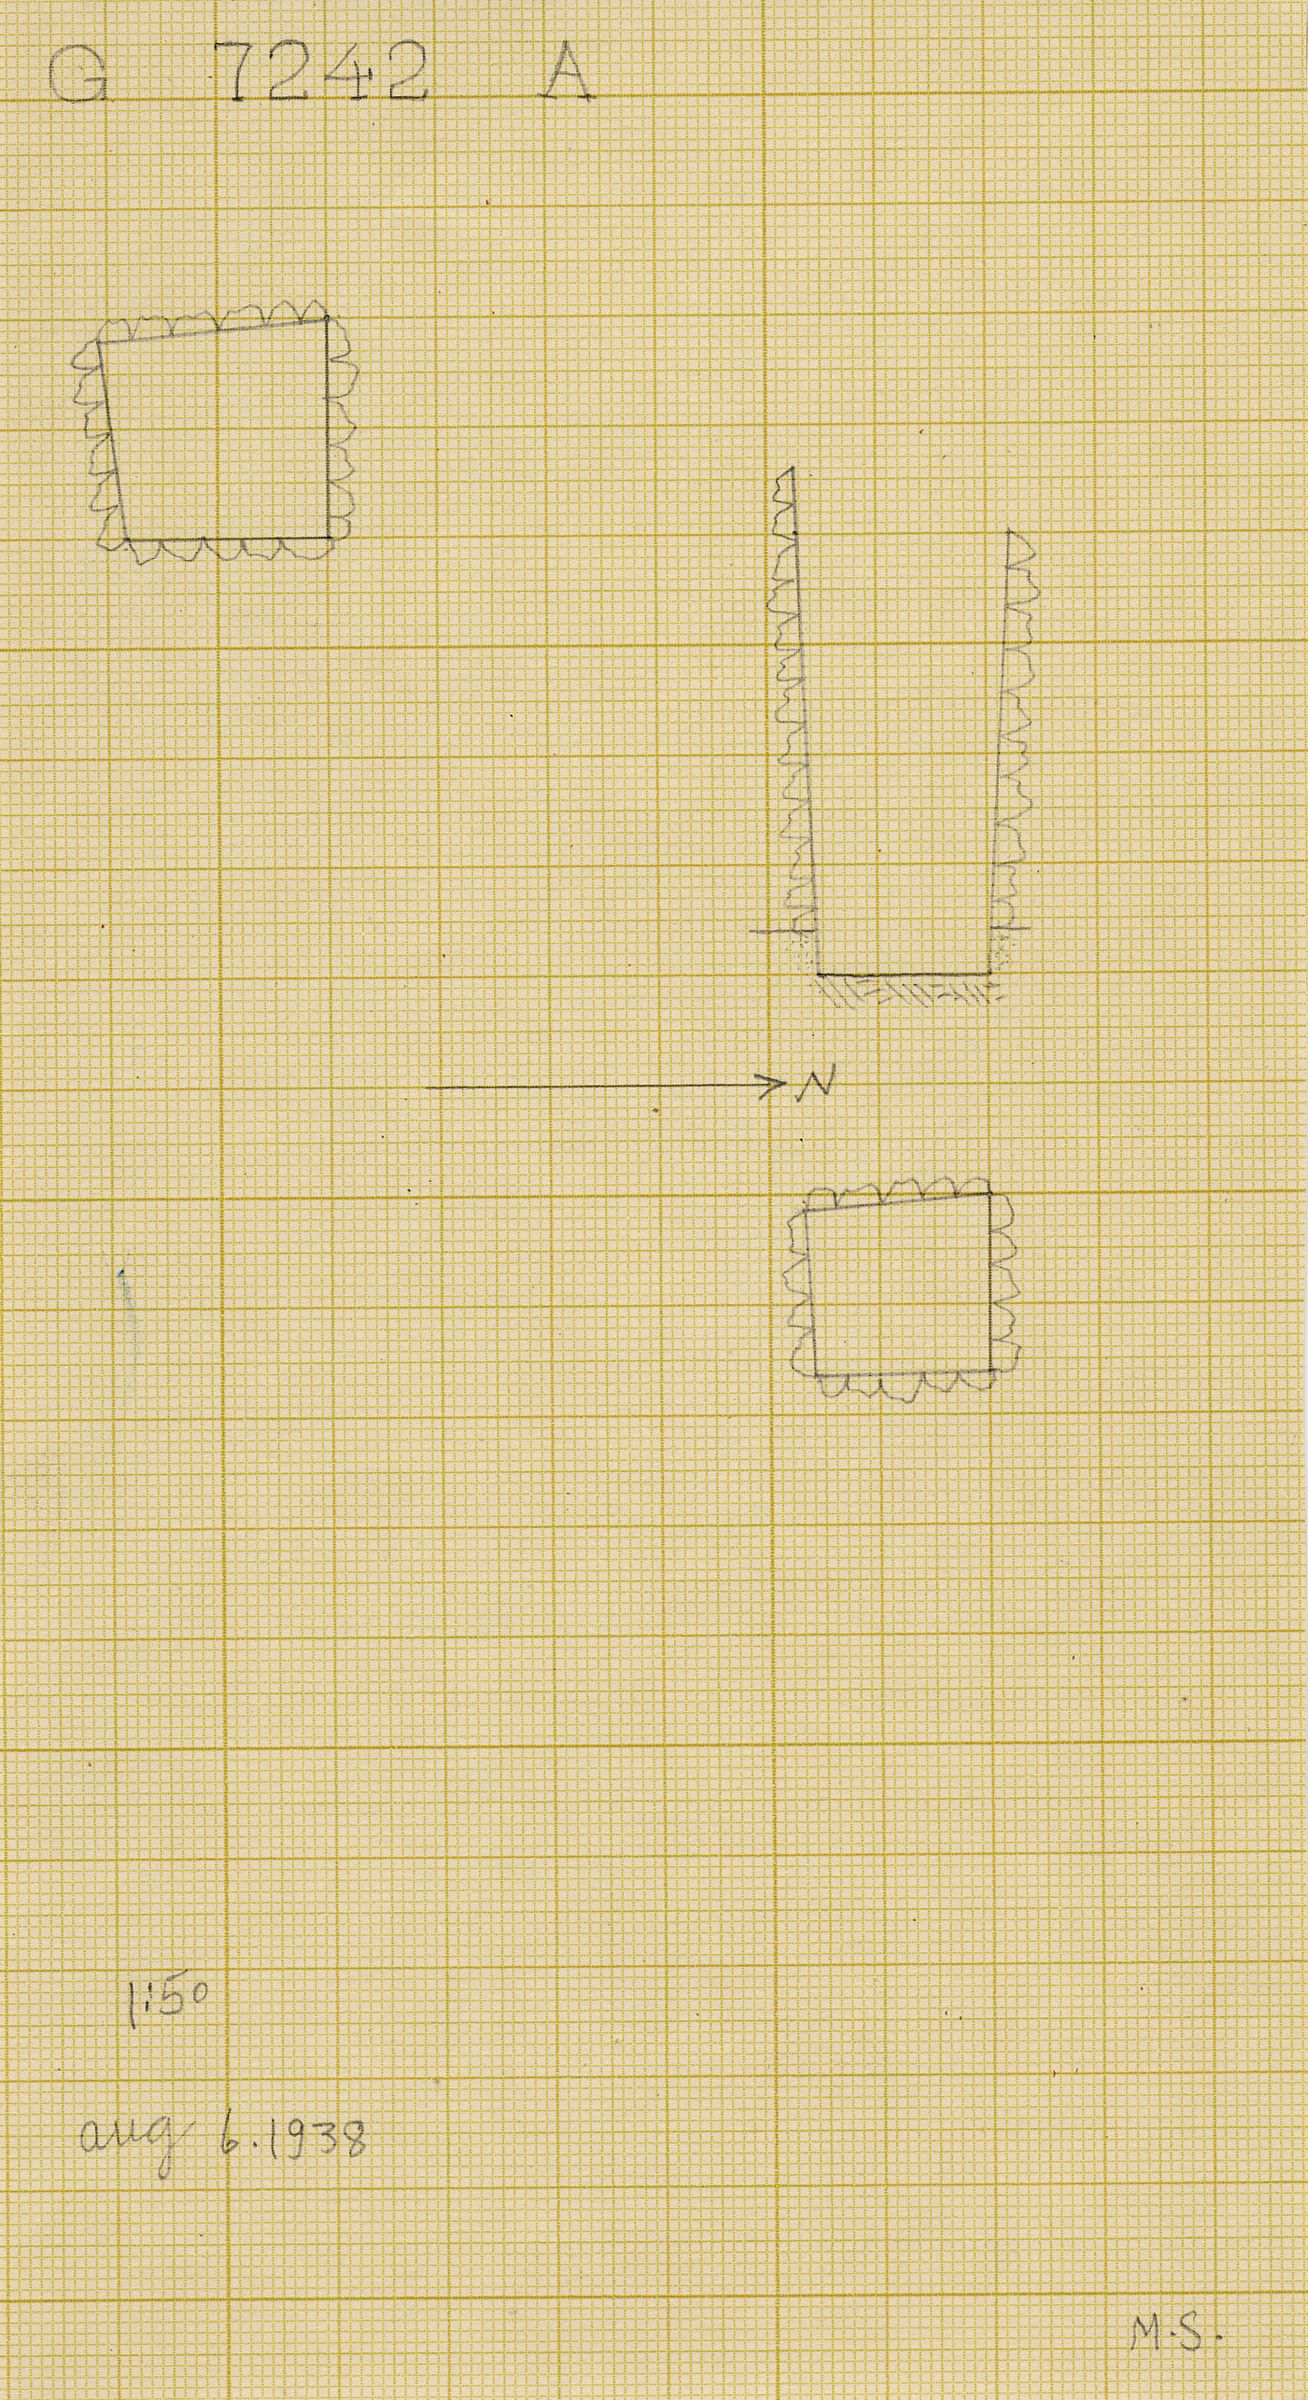 Maps and plans: G 7242, Shaft A